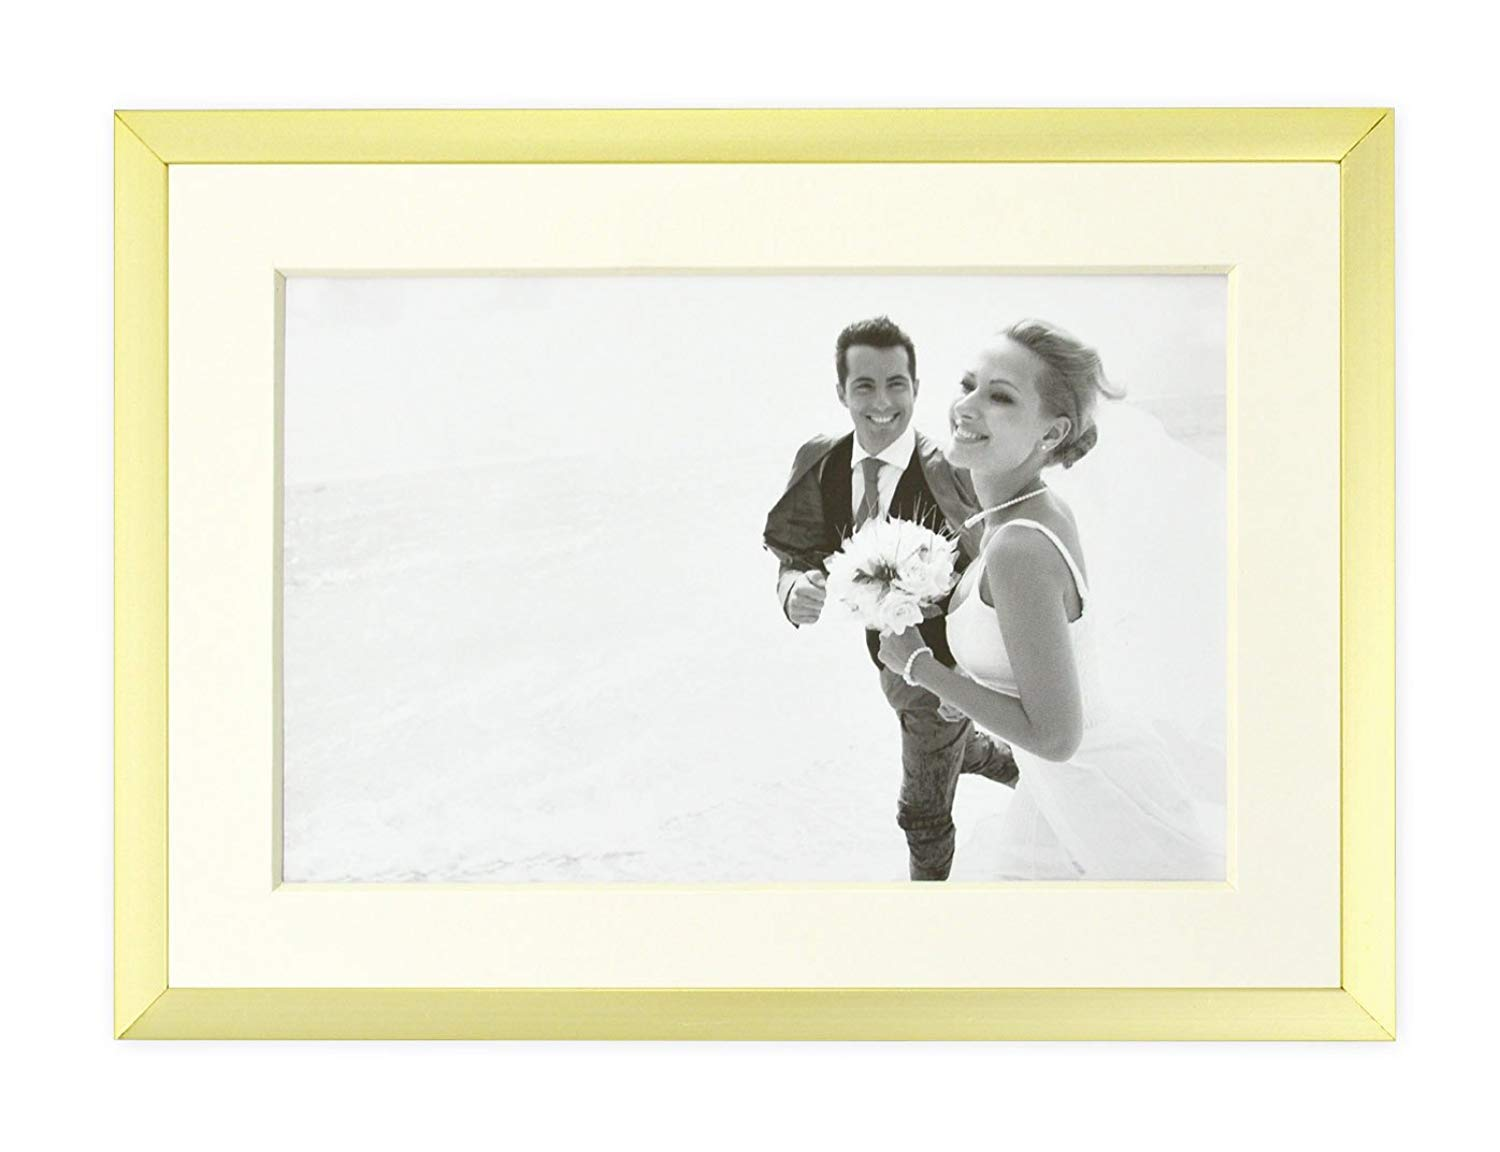 5x7-Table Top 1 Metal Wall Photo Frame Collection Golden State Art Aluminum Gold Photo Frame with Ivory Color Mat for Picture /& Real Glass